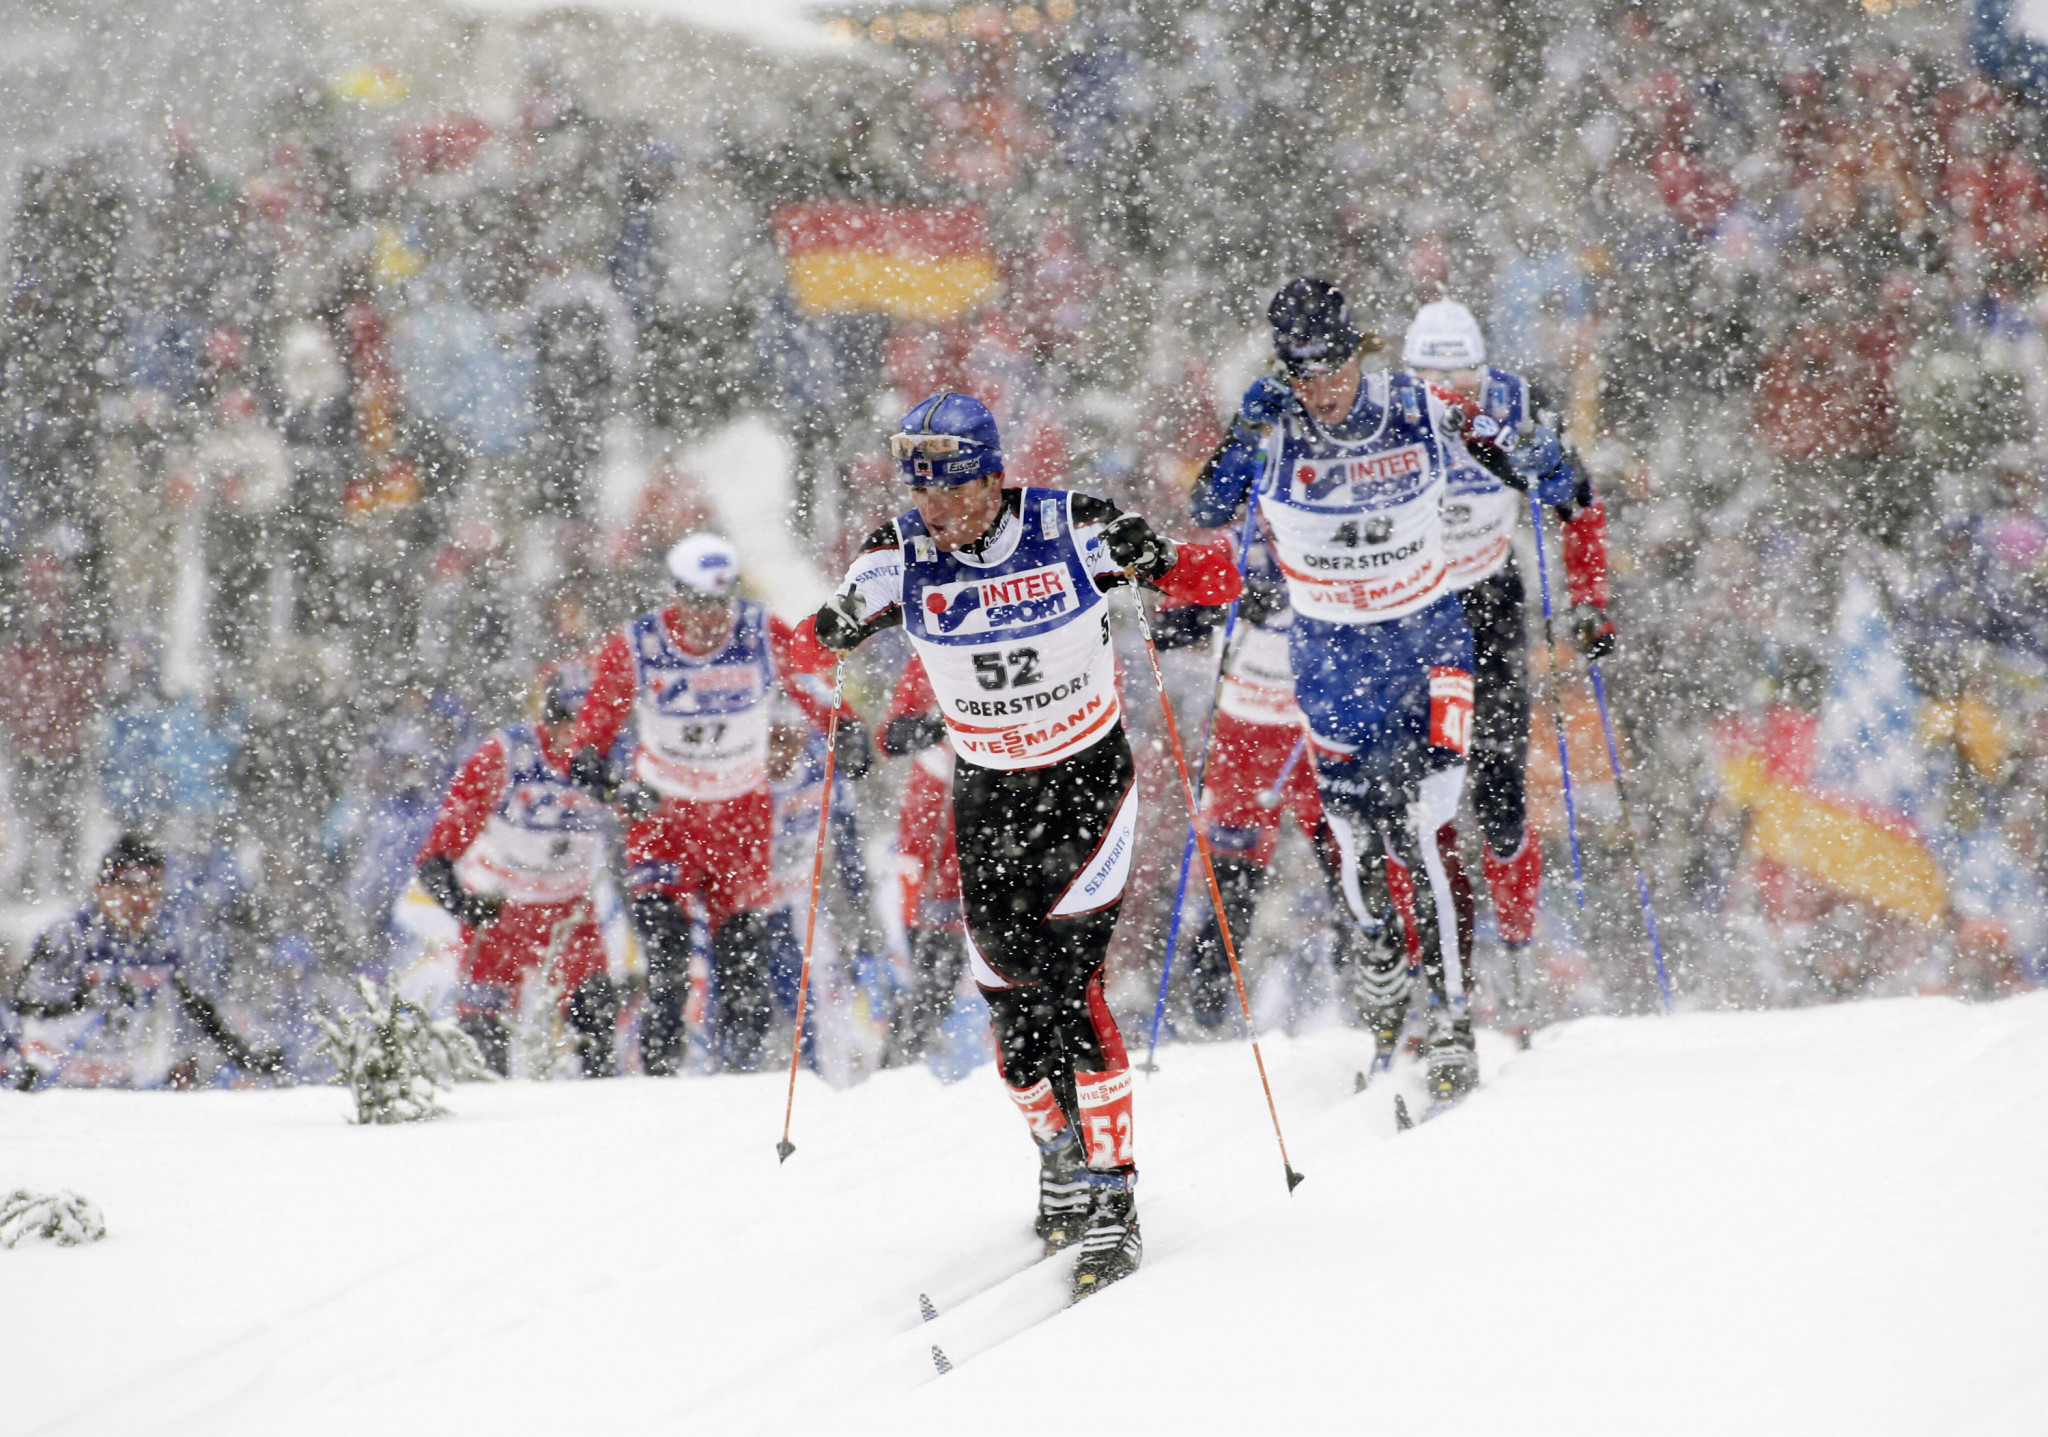 The FIS Nordic World Ski Championships were last held in Oberstdorf in 2005 ©Getty Images